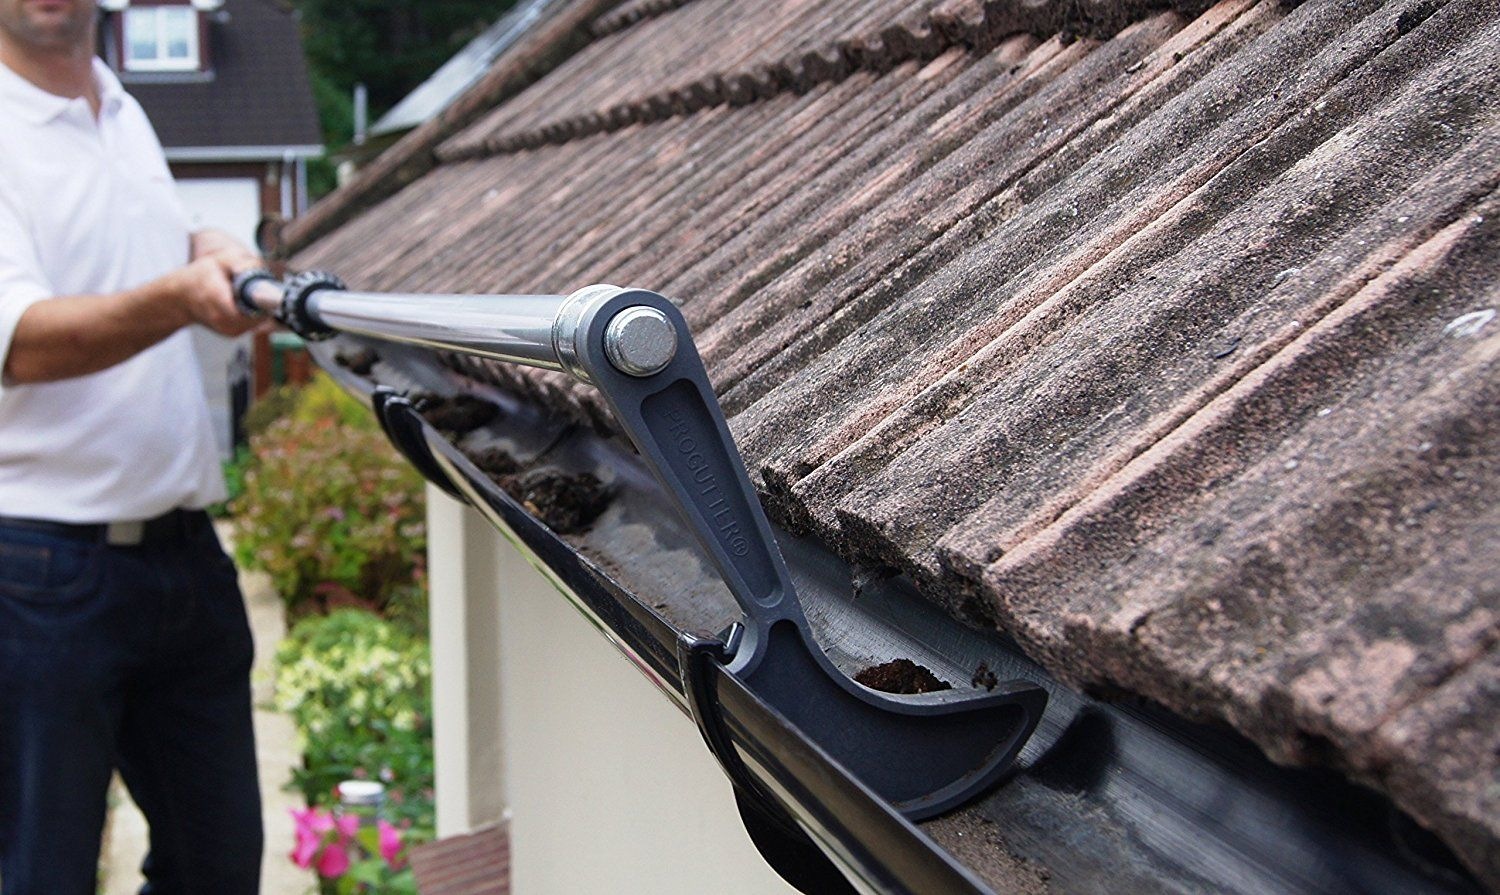 Roof Cleaning Services House Washing In Pittsburgh Cleaning Gutters Gutter Cleaning Tool Roof Cleaning